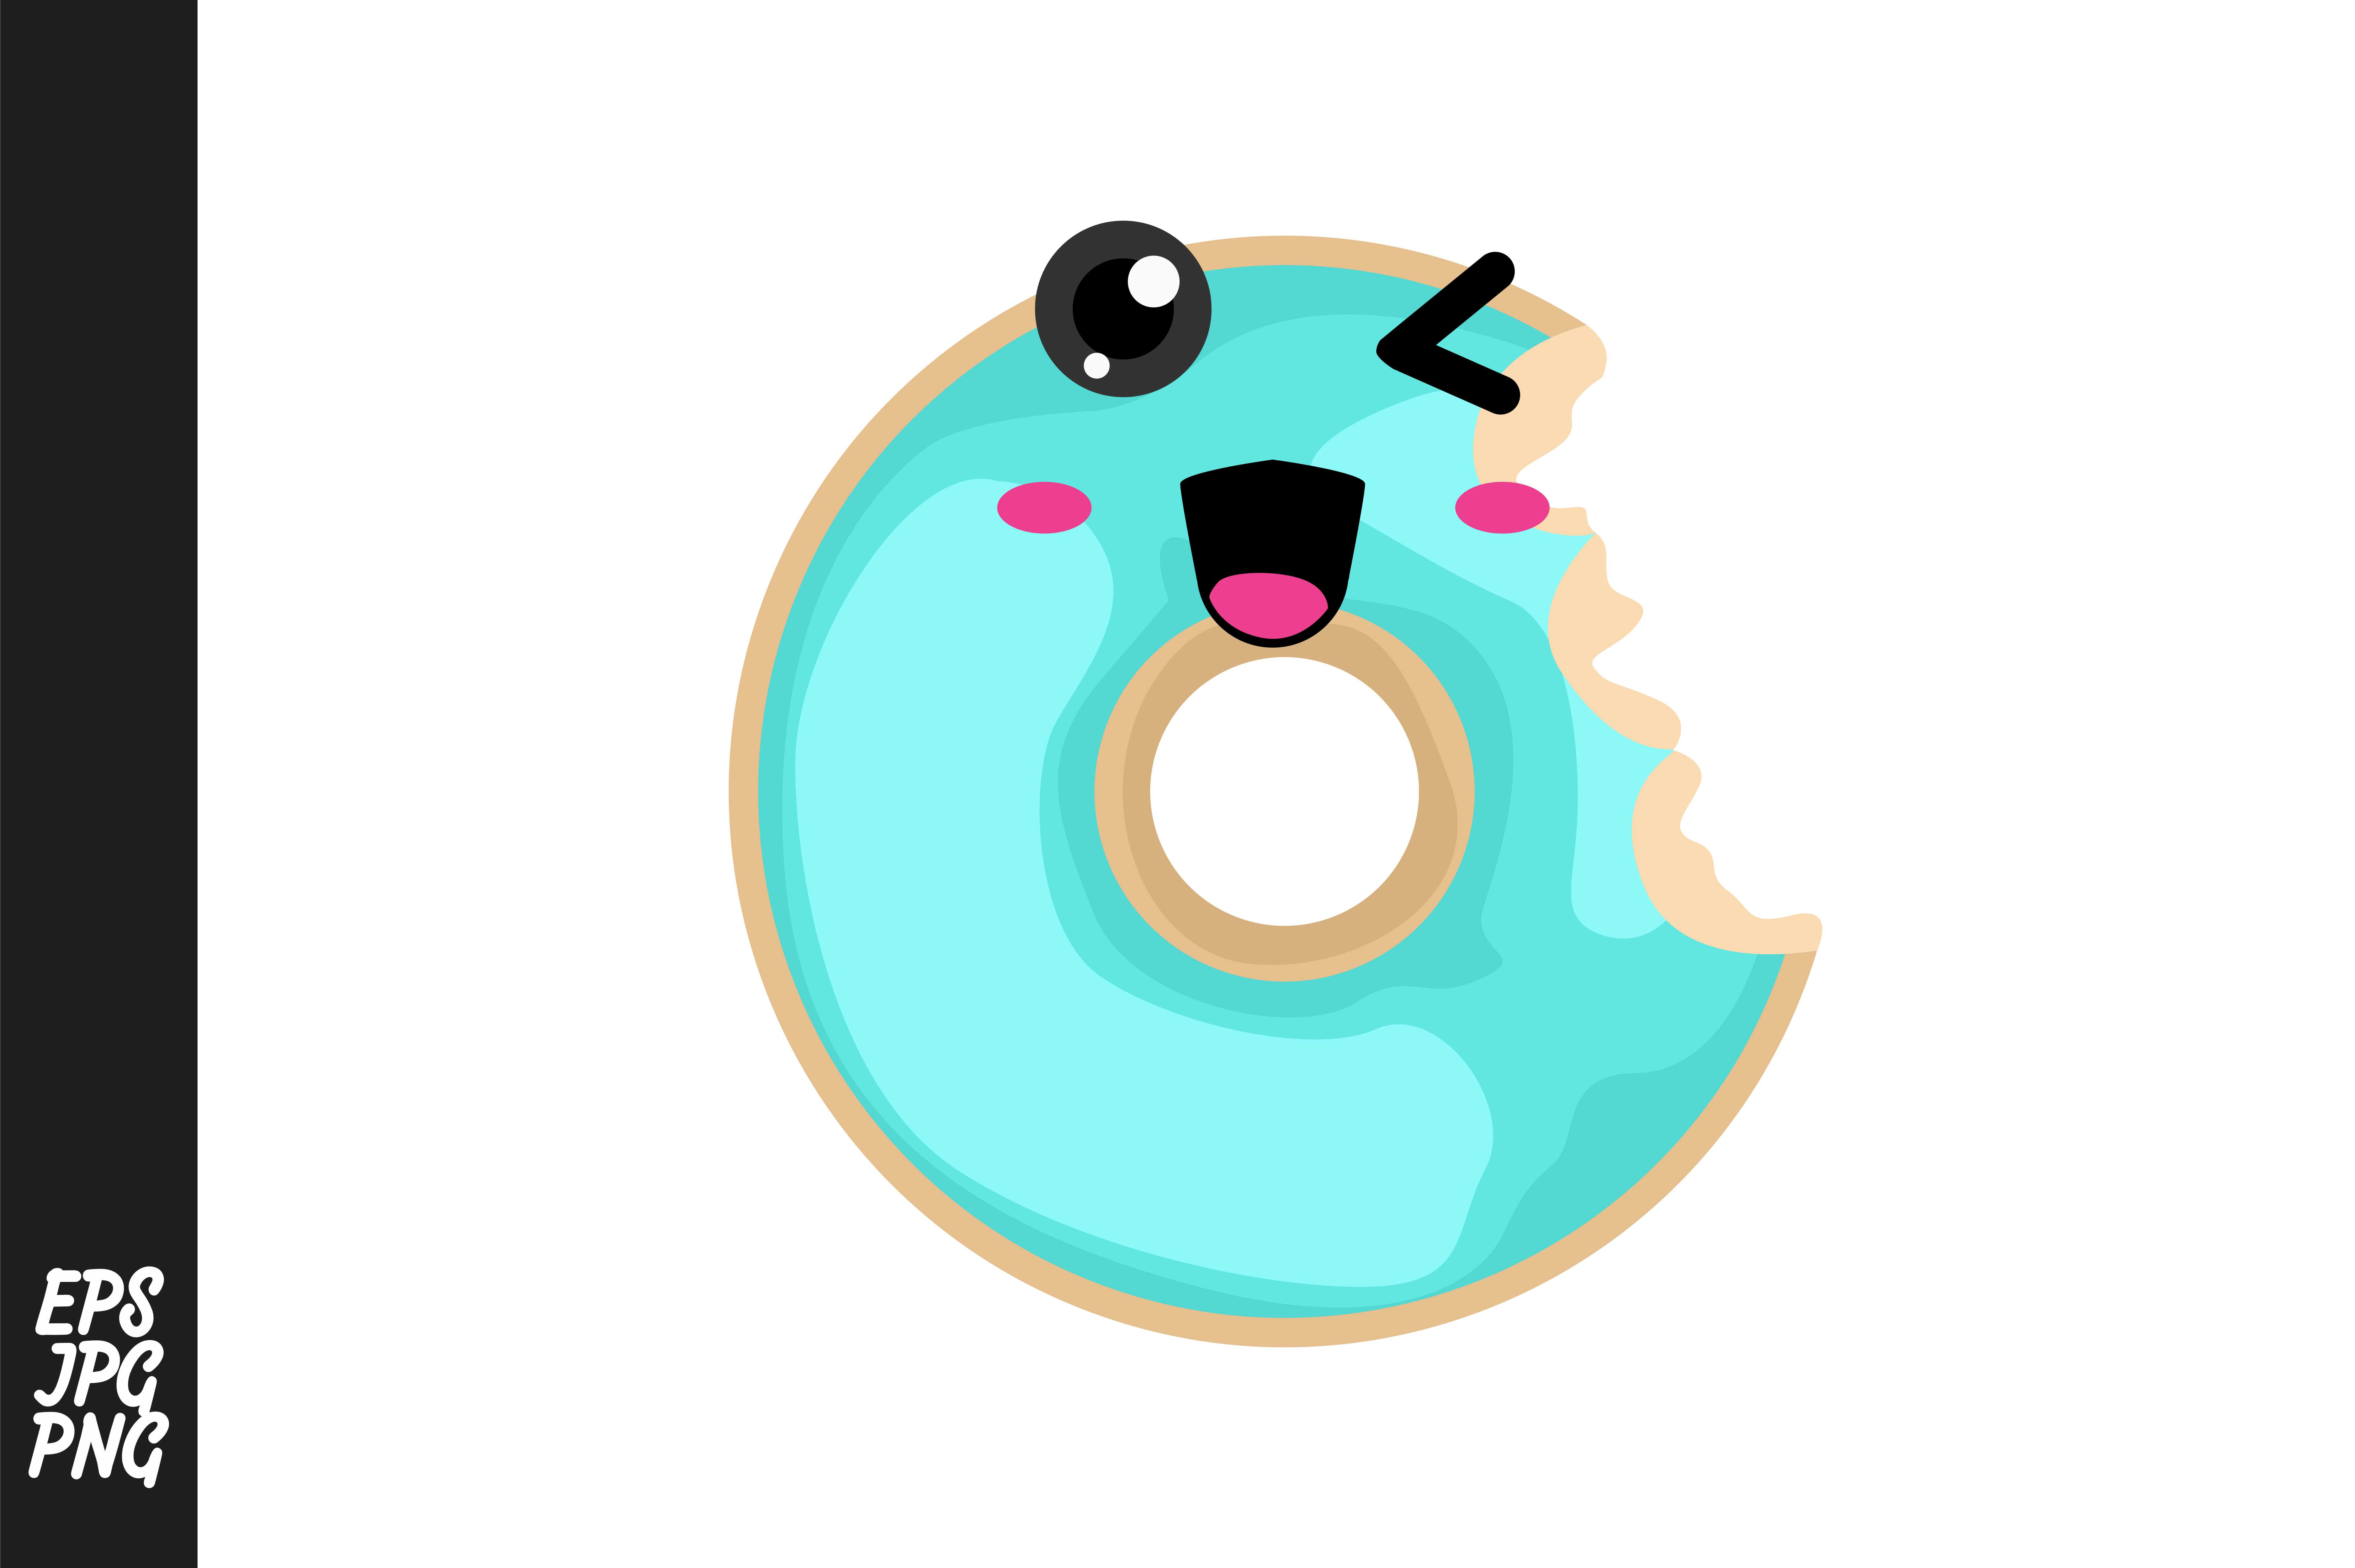 Download Free Cute Donuts Cartoon Vector Graphic By Arief Sapta Adjie Ii for Cricut Explore, Silhouette and other cutting machines.